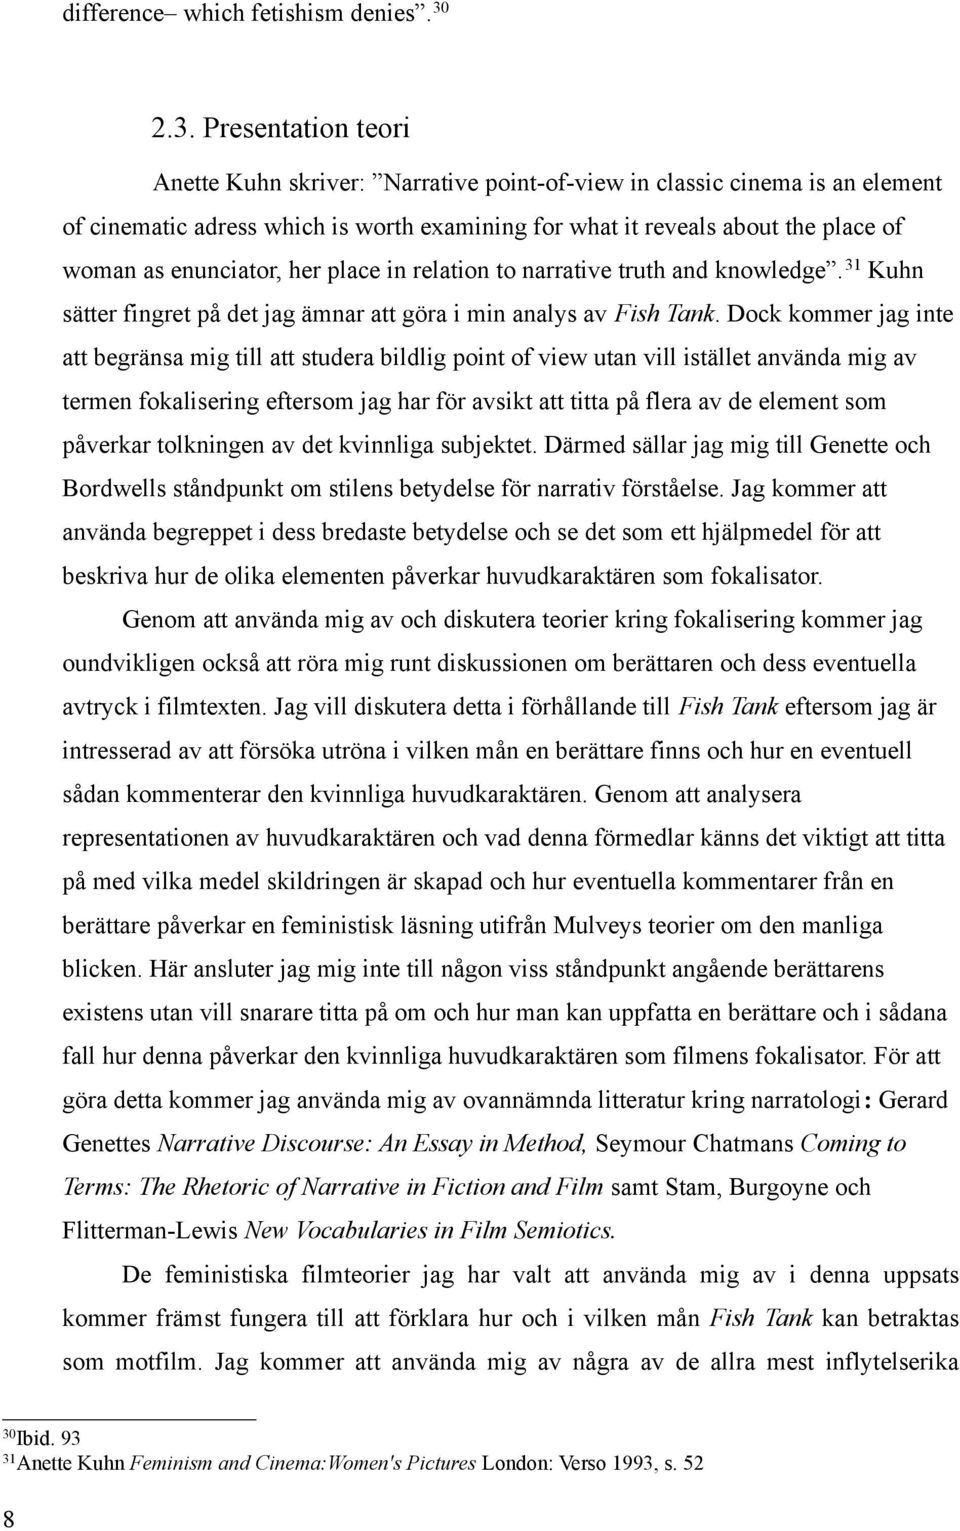 enunciator, her place in relation to narrative truth and knowledge. 31 Kuhn sätter fingret på det jag ämnar att göra i min analys av Fish Tank.